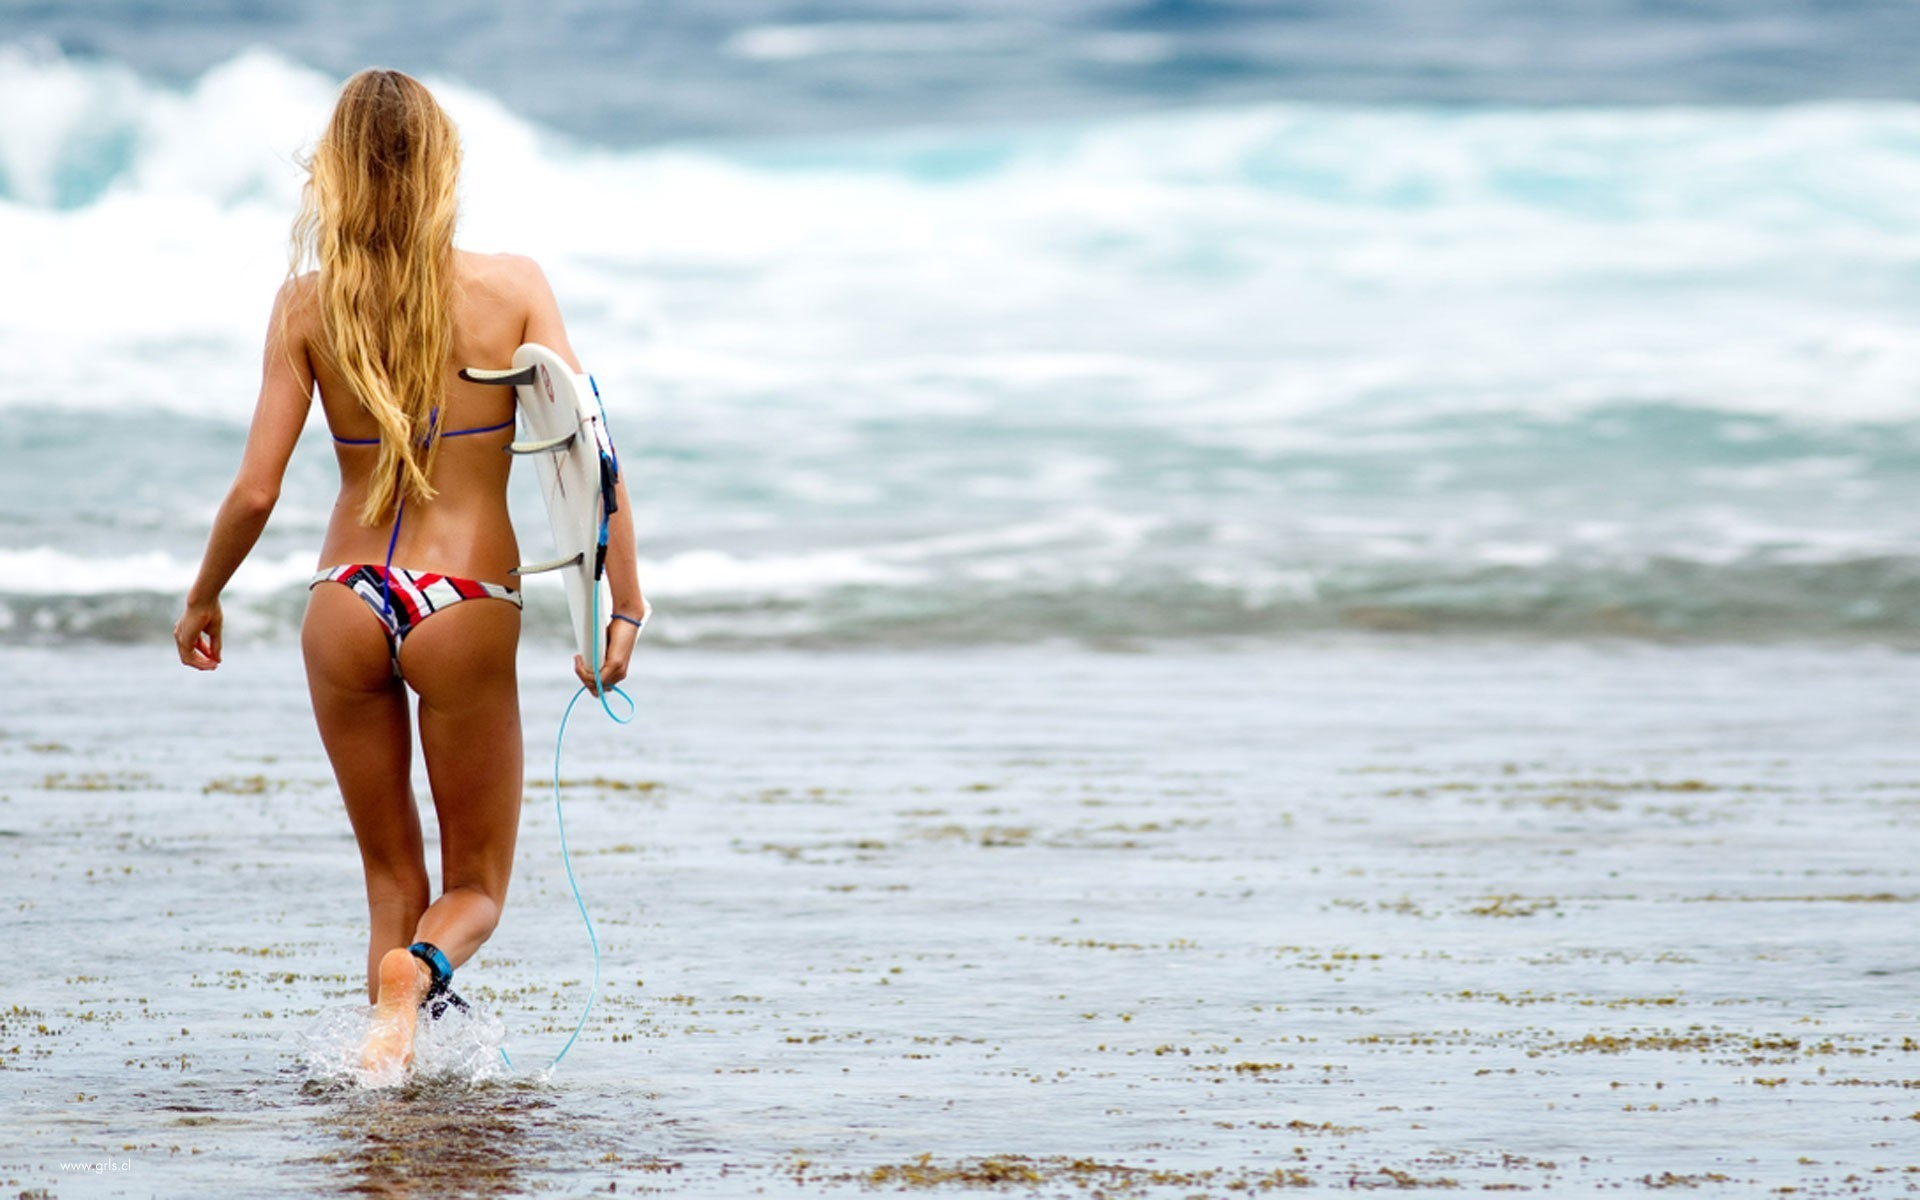 blondes woman water surfing HD Wallpaper